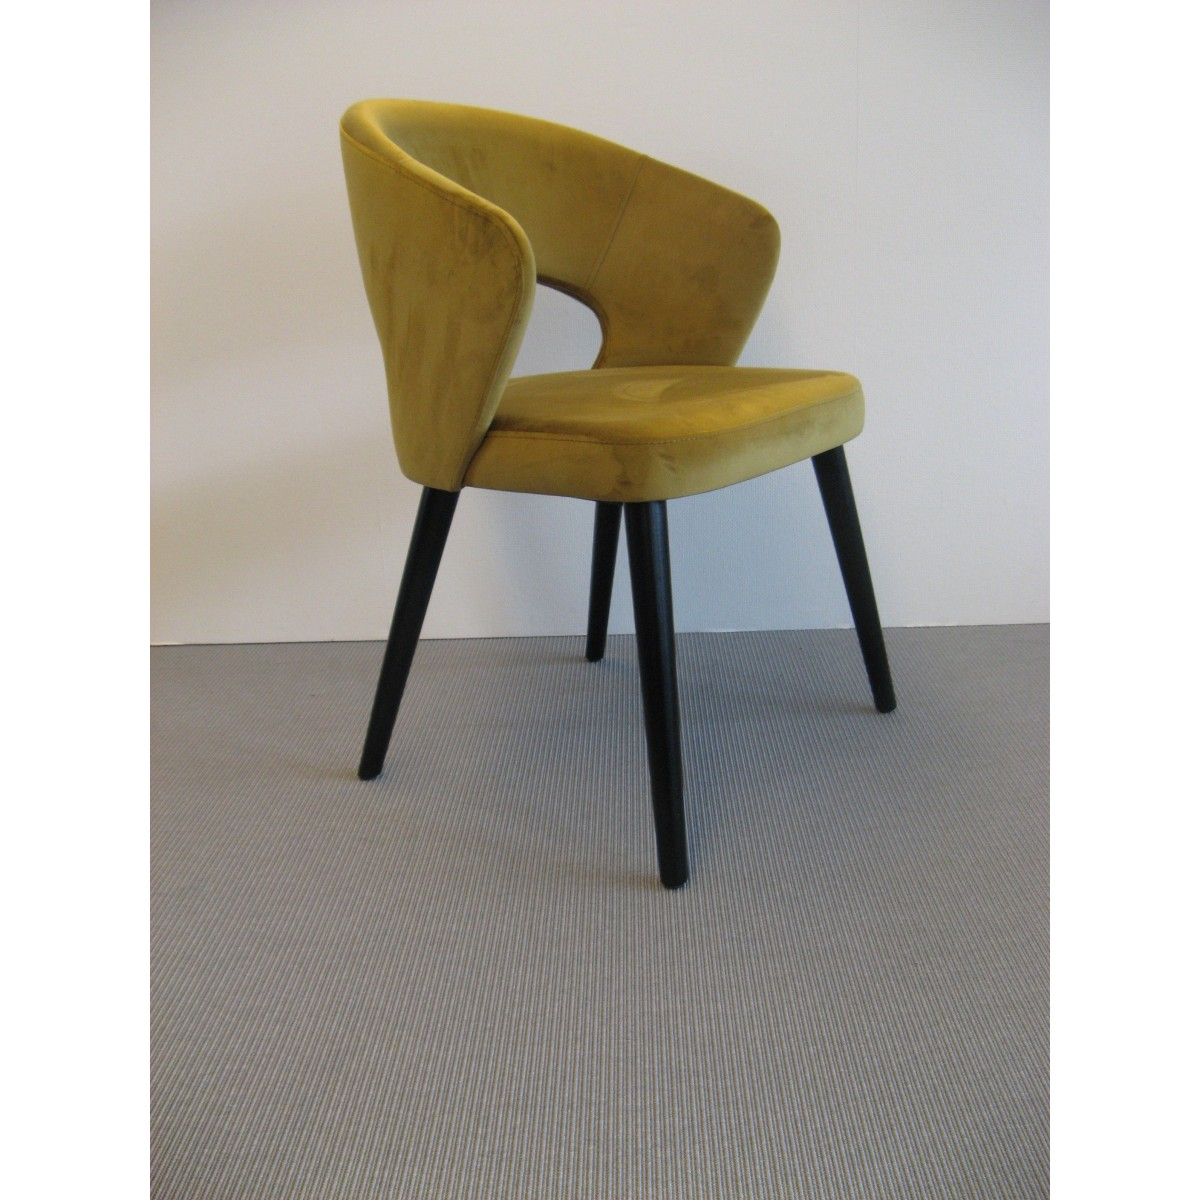 Chaise Fay Moustarde